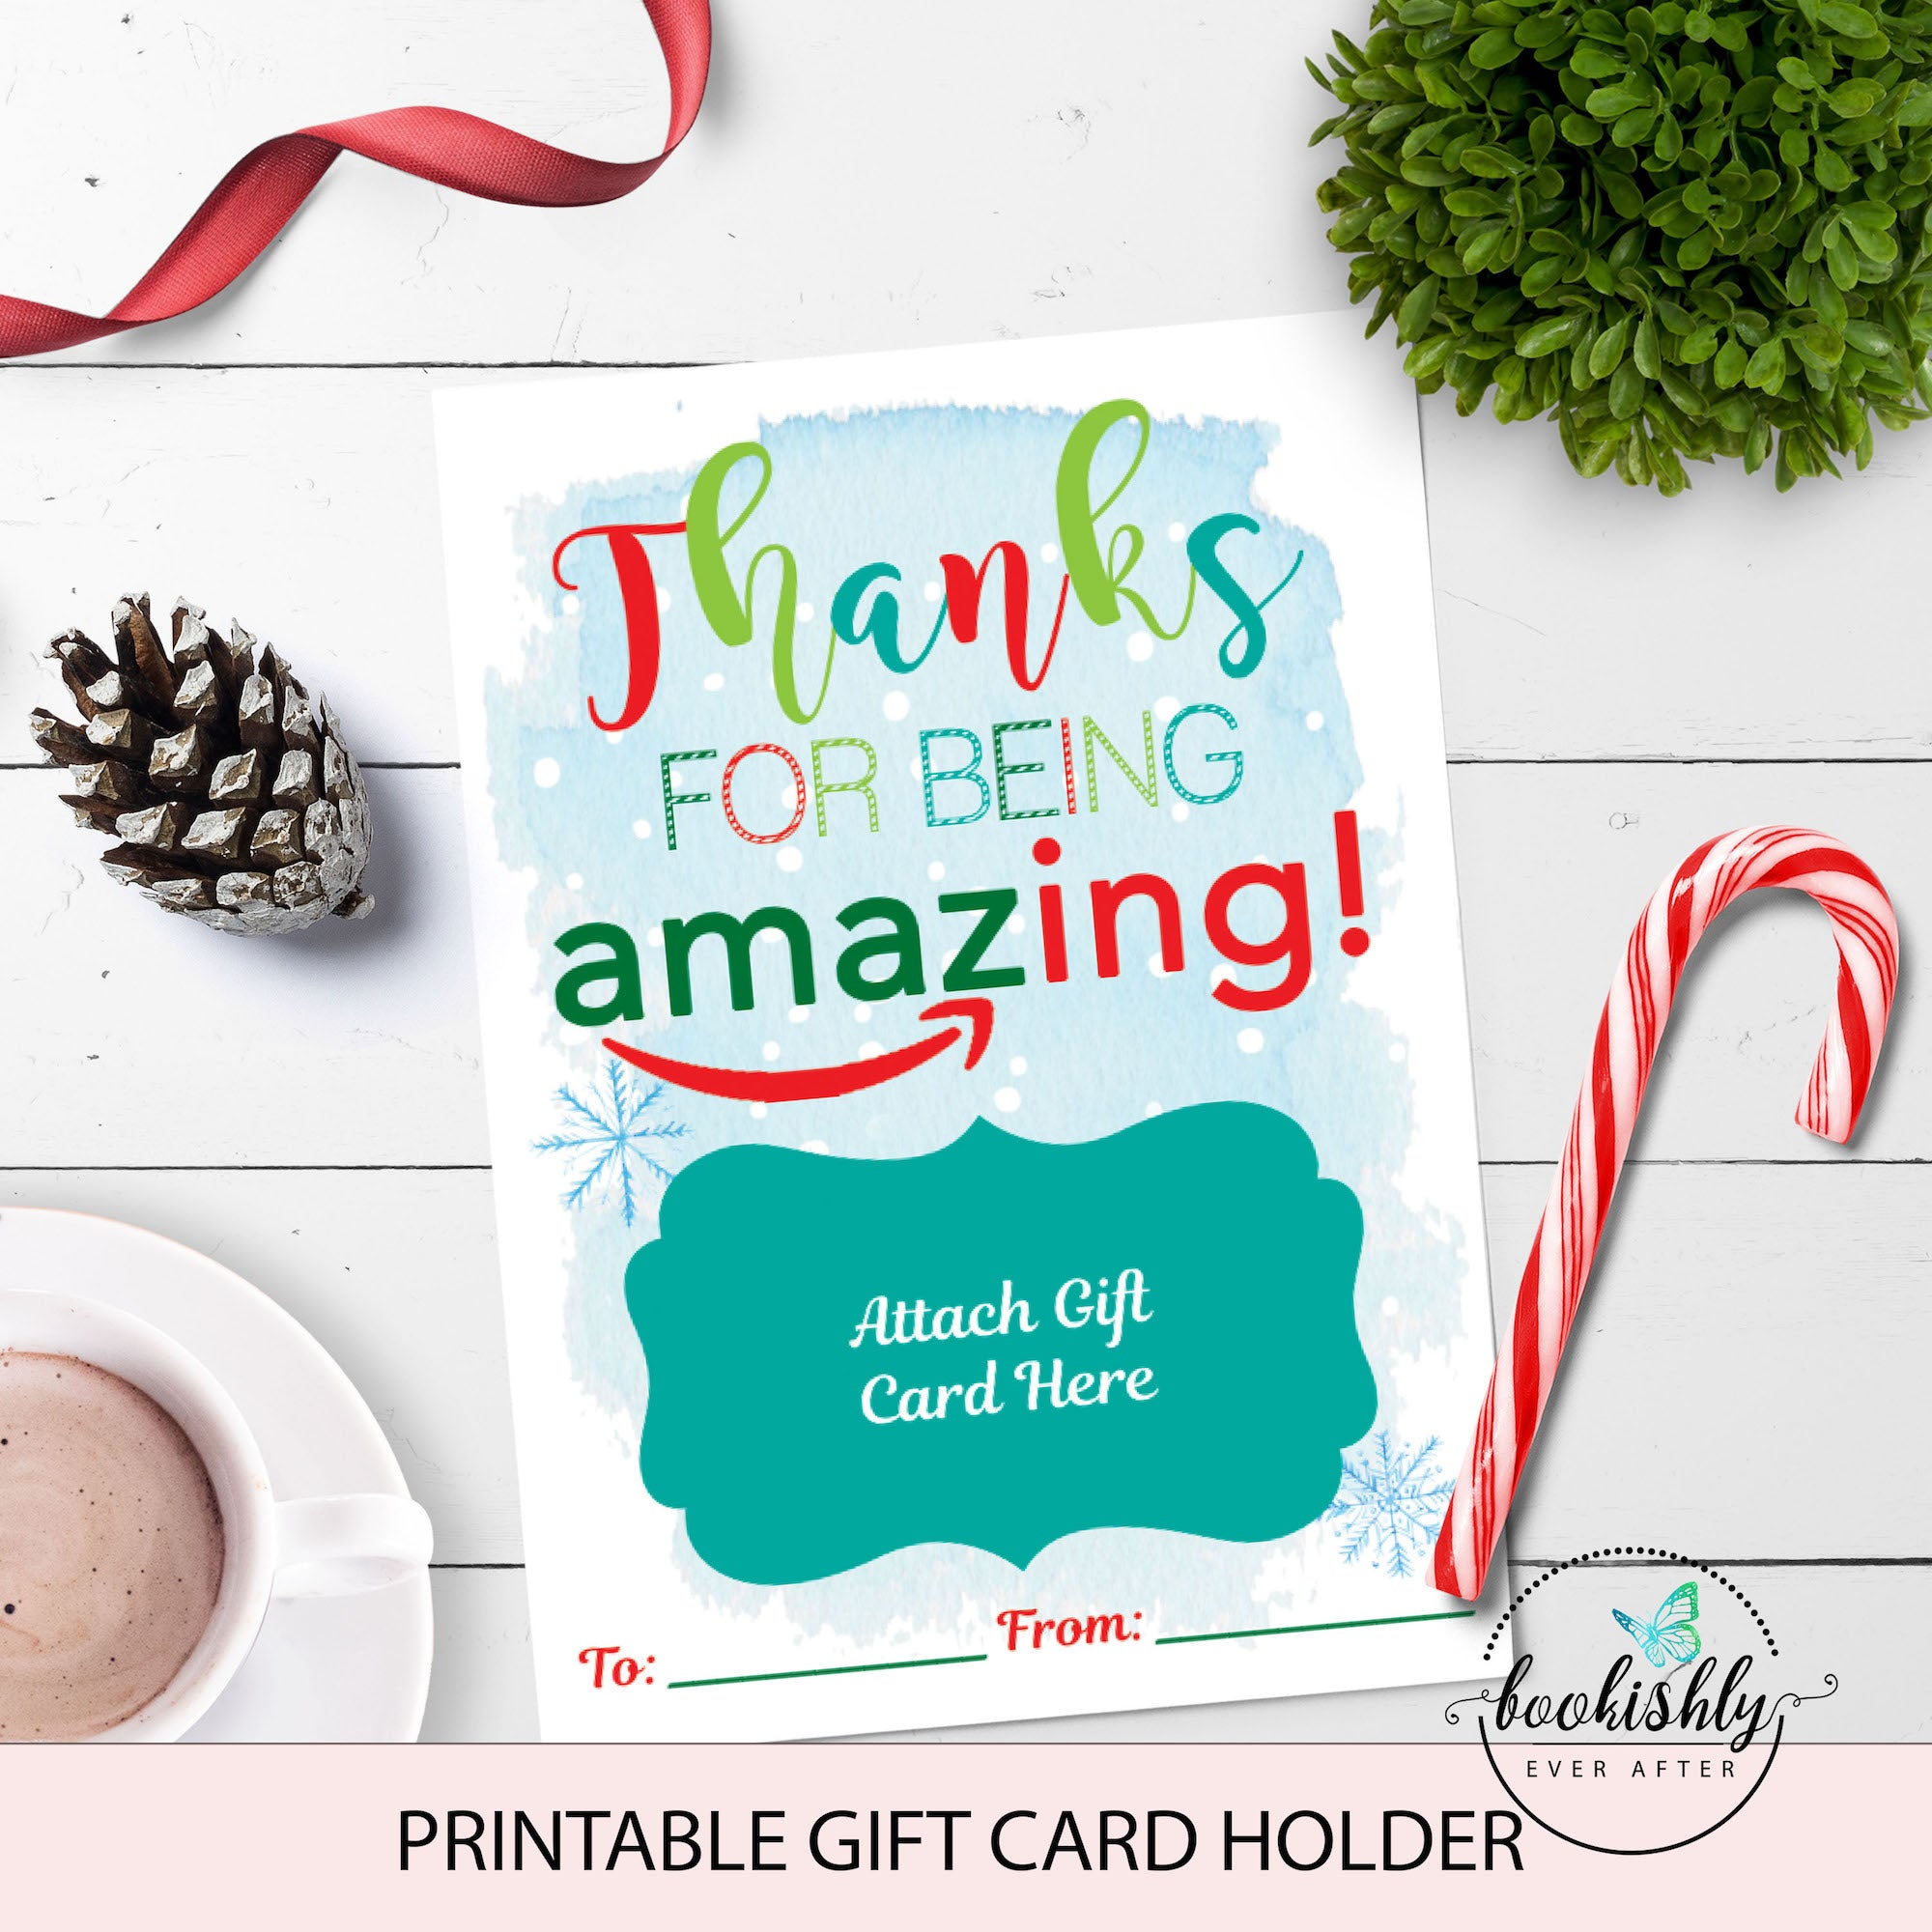 amazon christmas gift card holder printable teacher gift bookishly ever after amazon christmas gift card holder printable teacher gift bookishly ever after